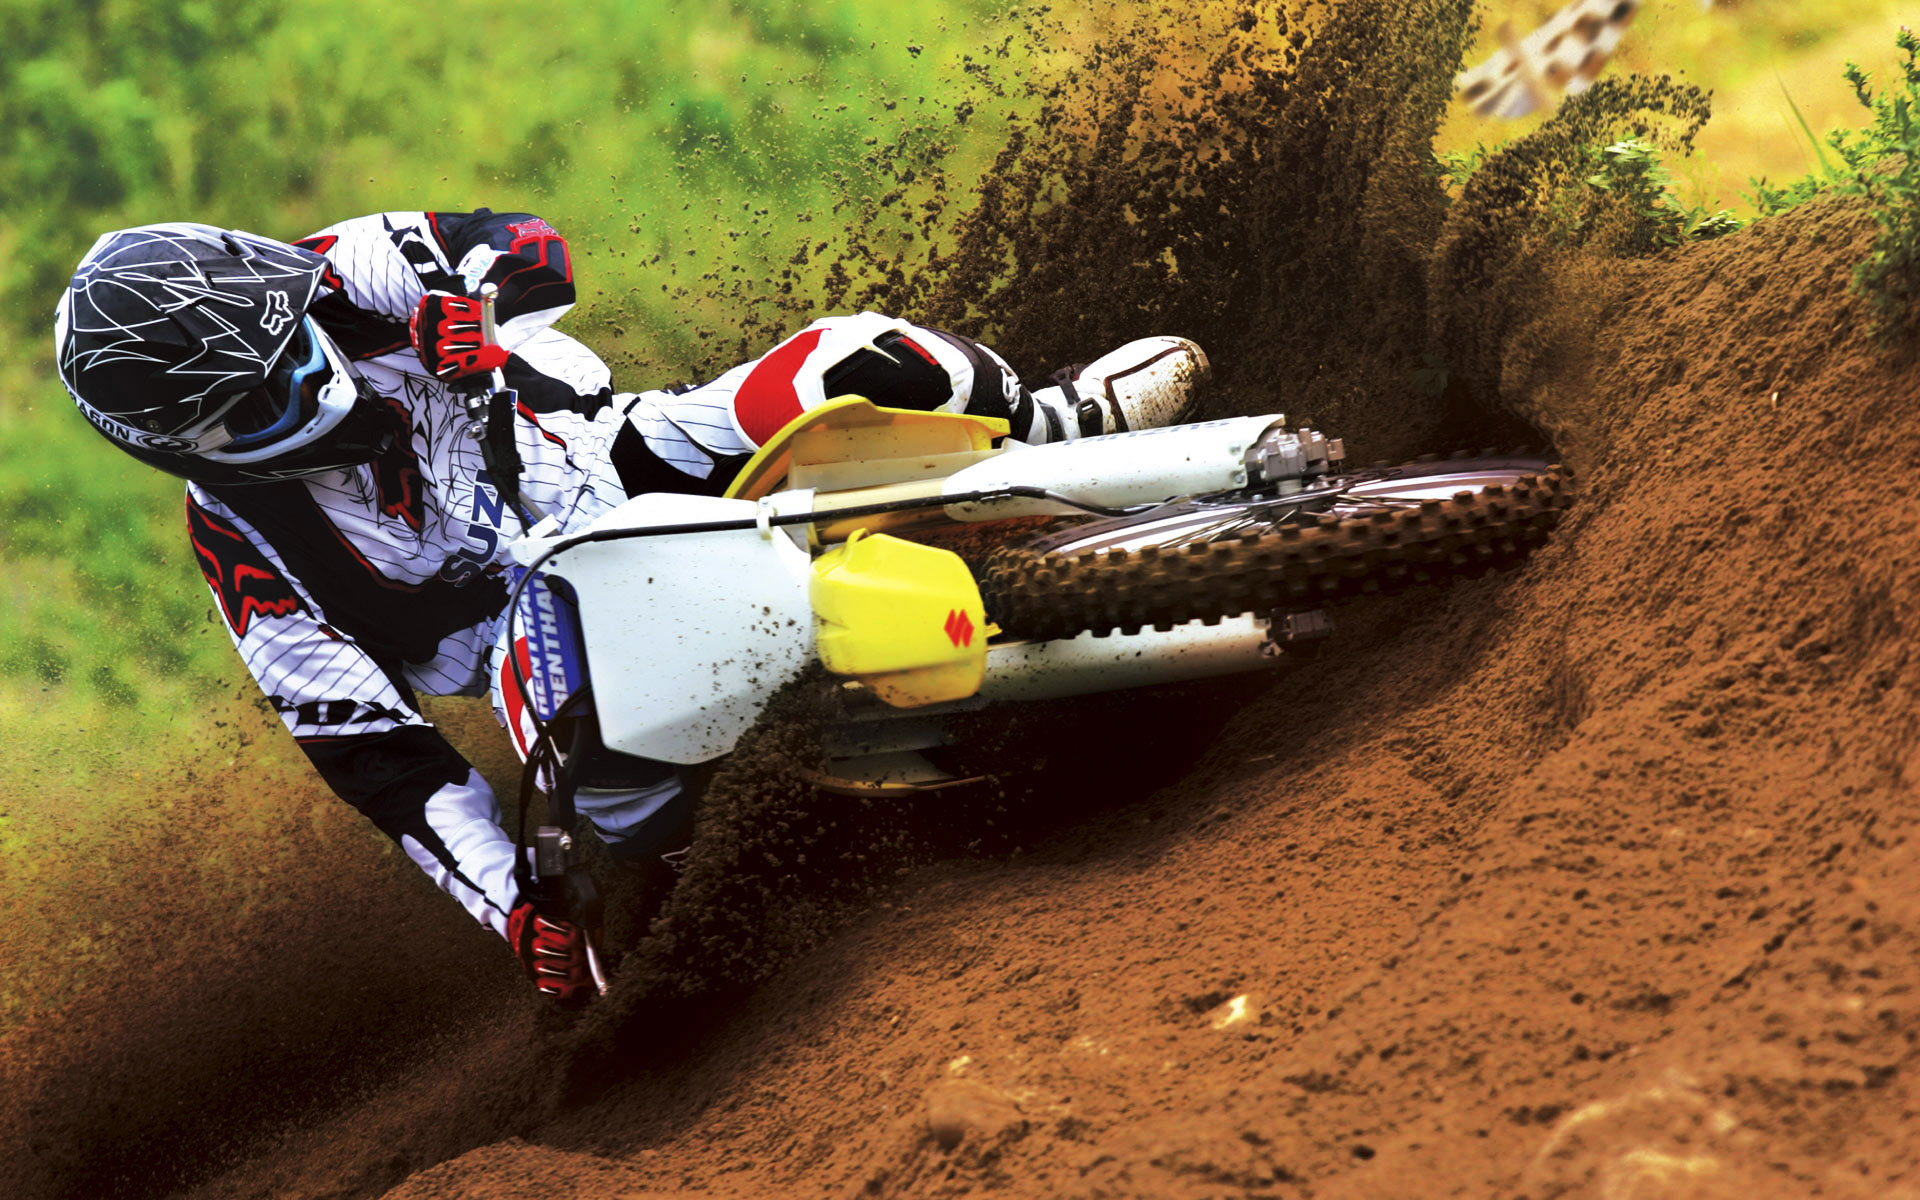 Suzuki Motocross Bike Race 4232441 1920x1200 All For Desktop